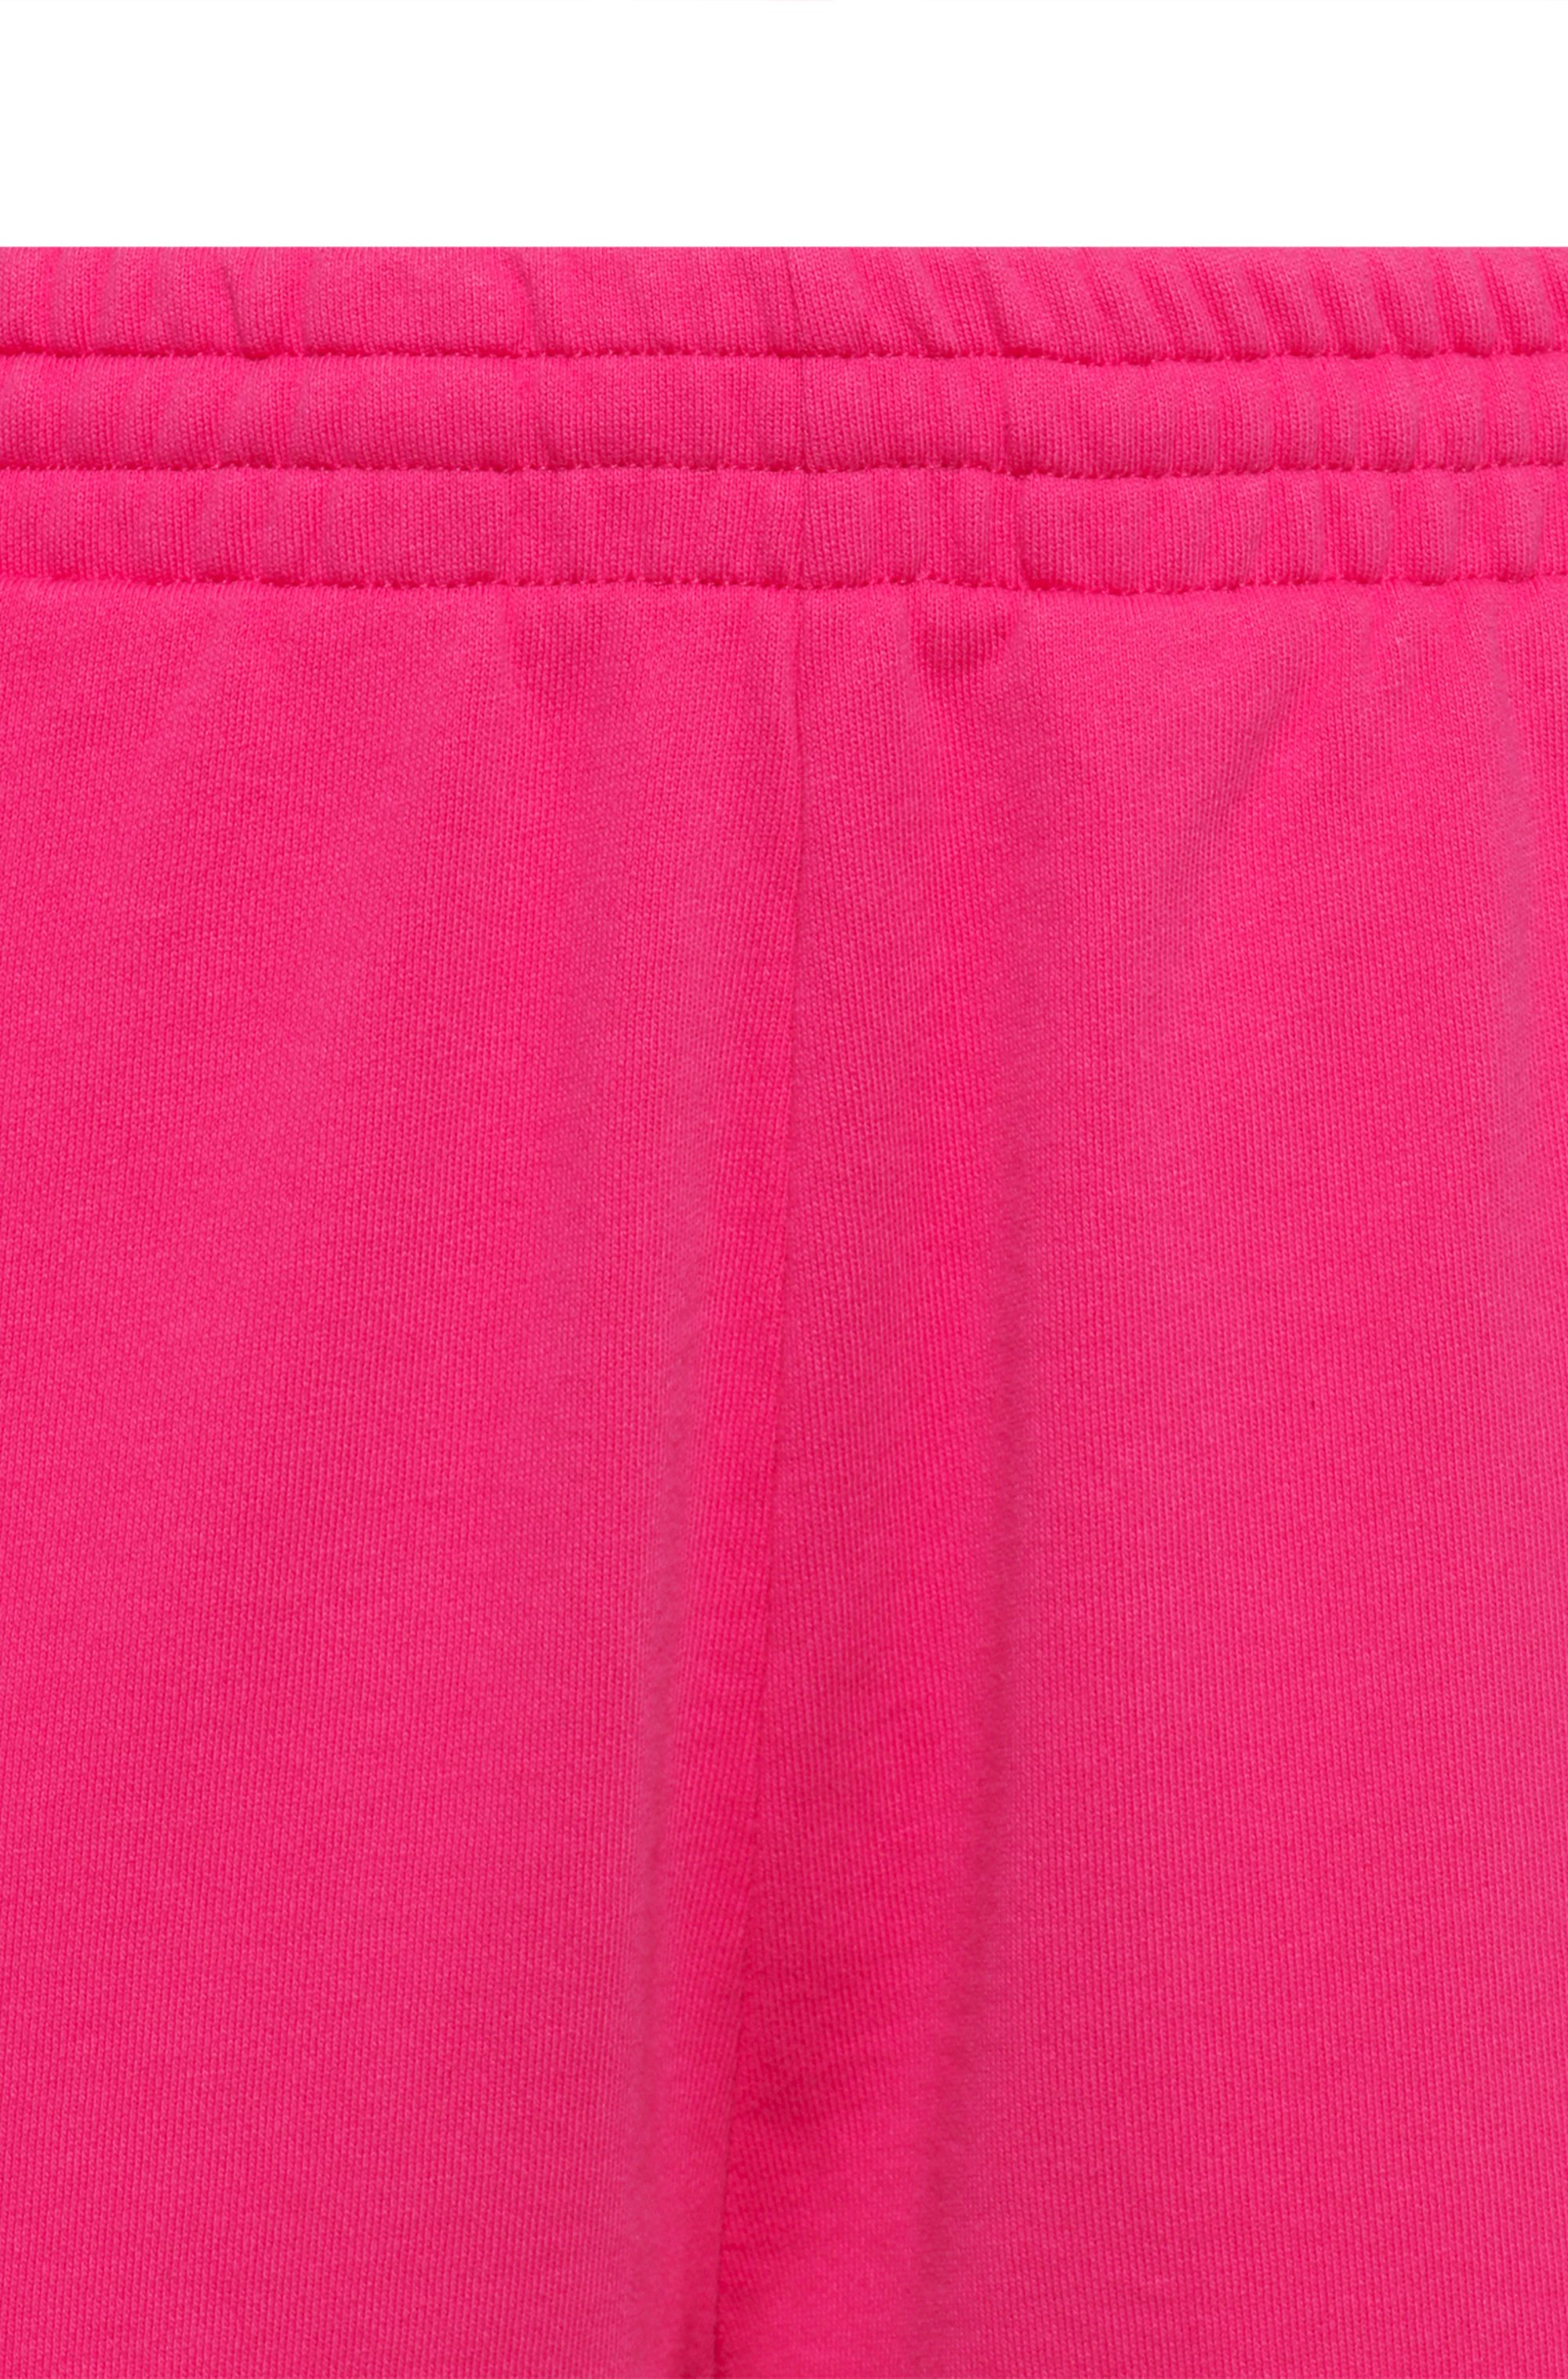 Relaxed-fit tracksuit bottoms in Recot2® French terry cotton